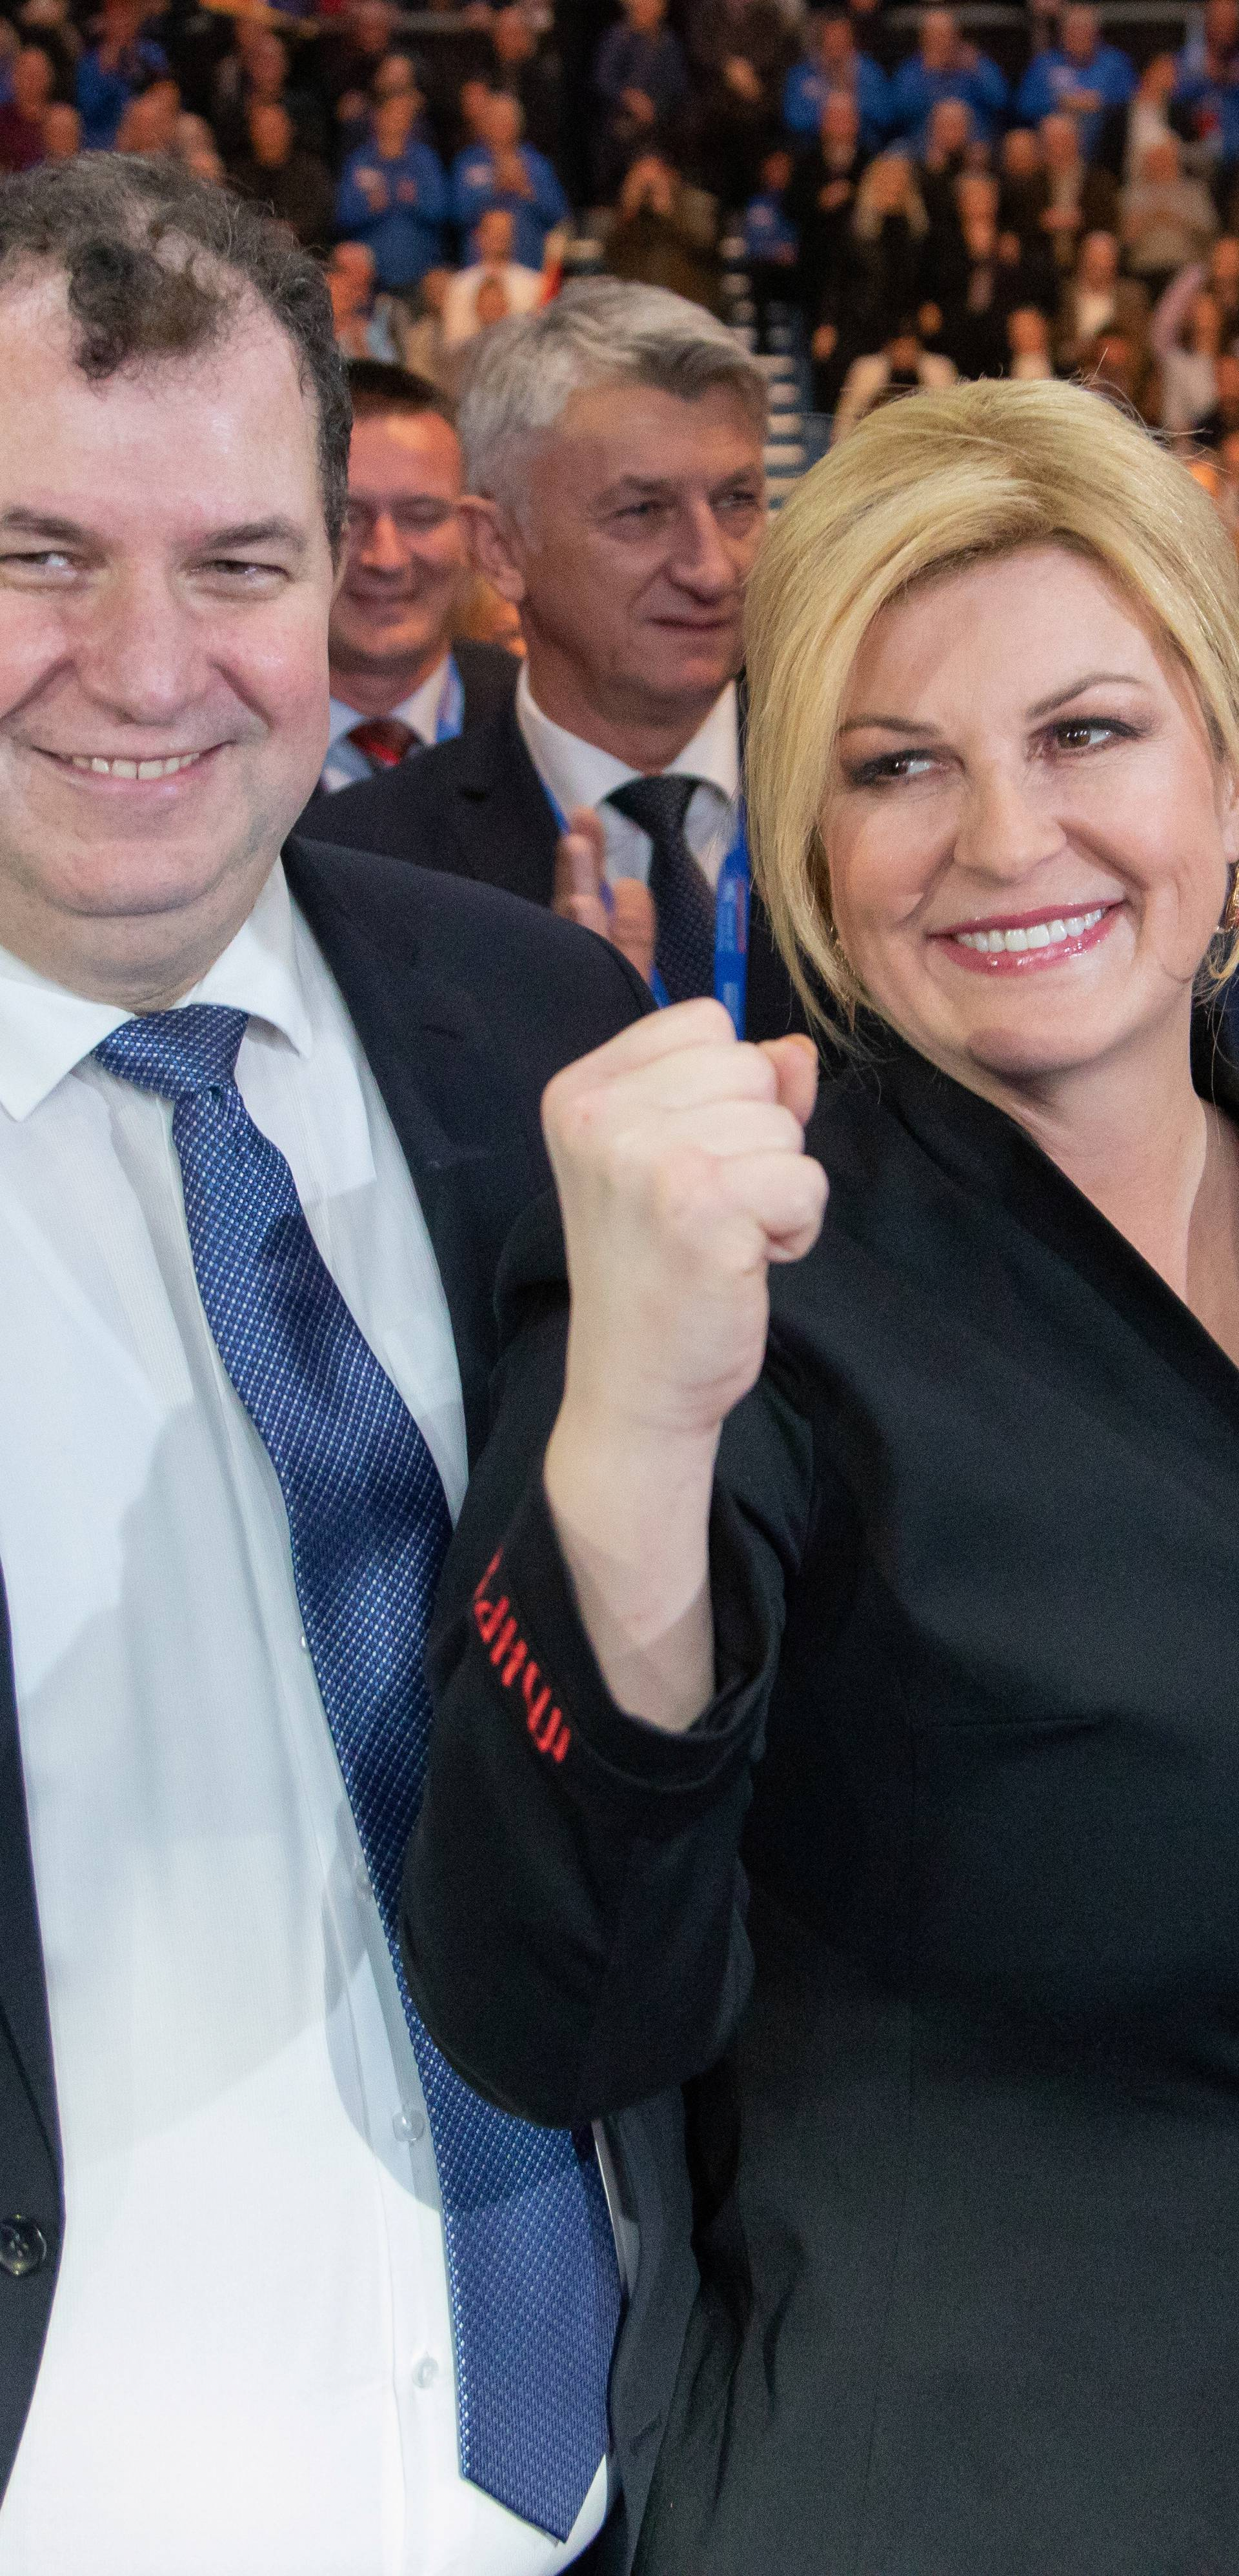 Croatia's President Kolinda Grabar Kitarovic and presidential candidate poses for a picture with her husband Jakov Kitarovic during an election rally at Cibona hall in Zagreb